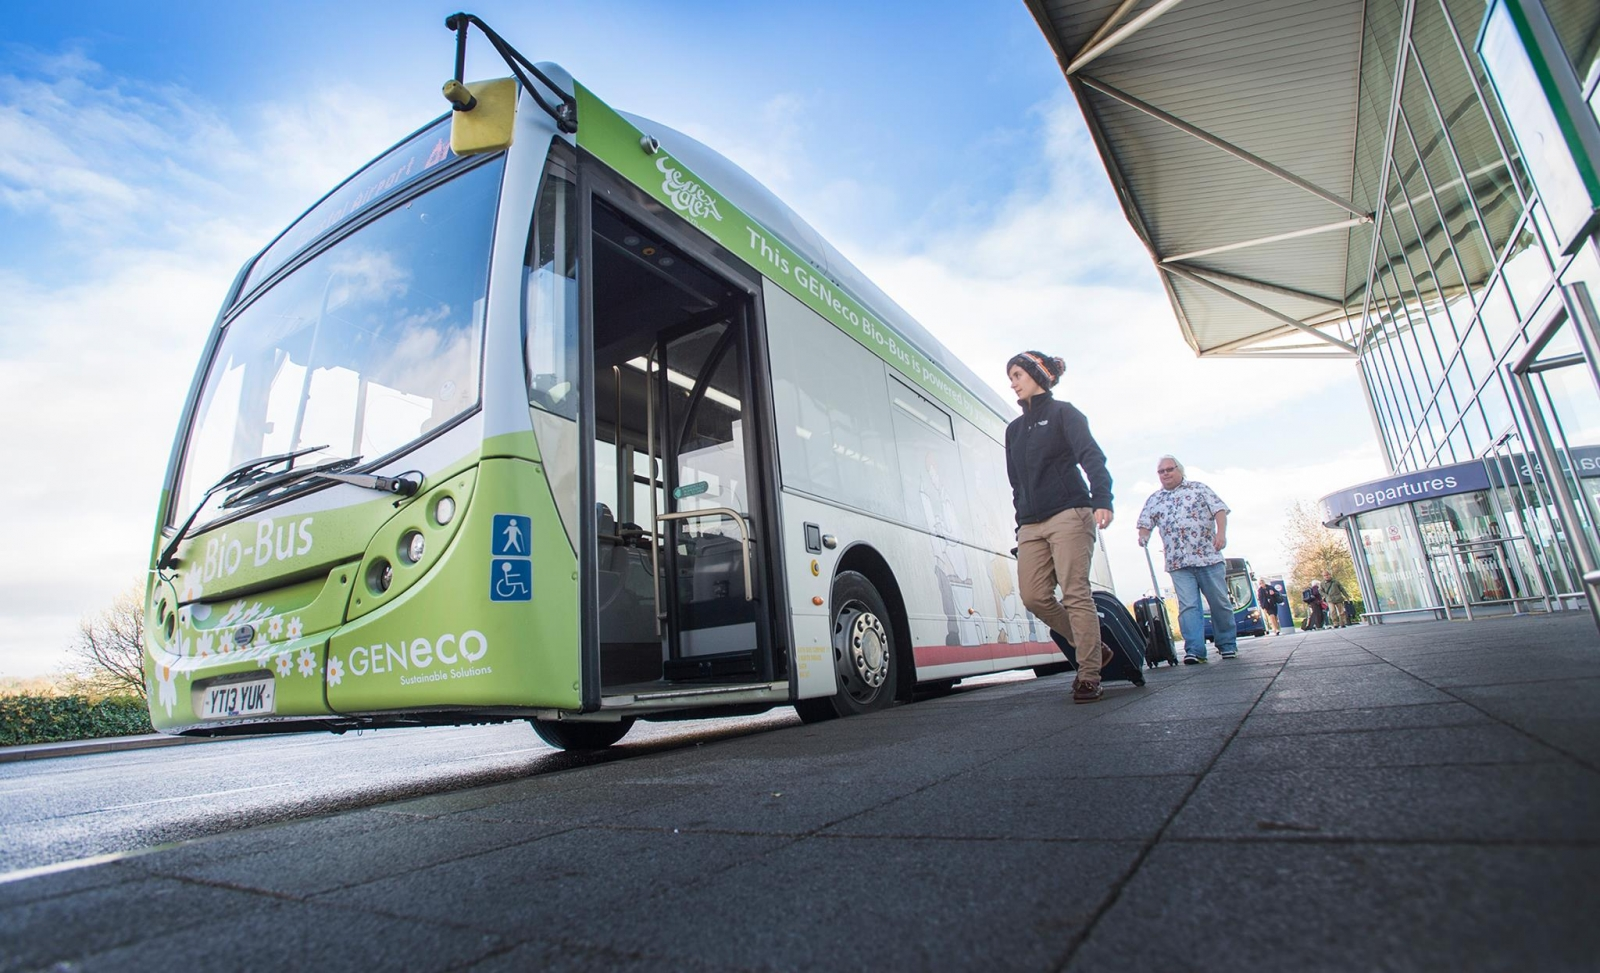 UK's First Poo-Powered Bus Takes to the Road